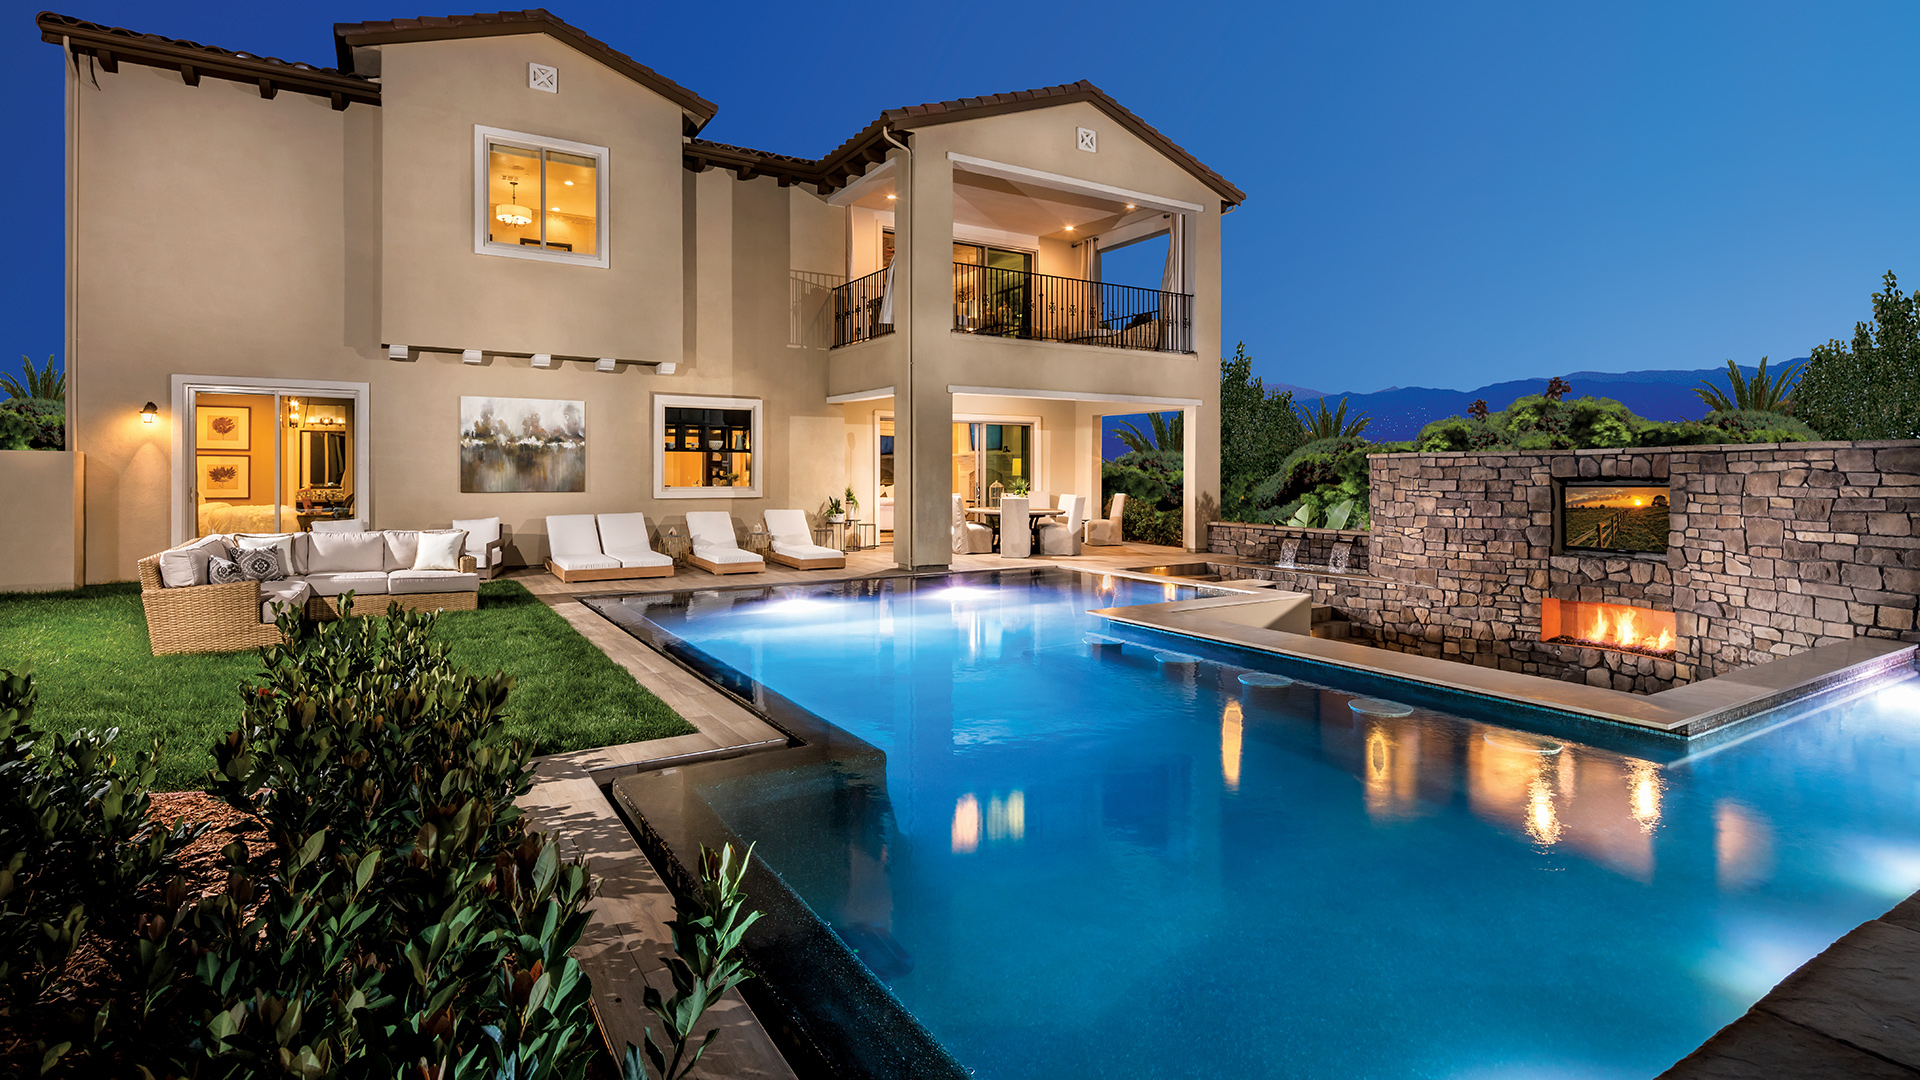 Located in picturesque El Dorado Hills, Pinnacle at Serrano offers luxurious country club living